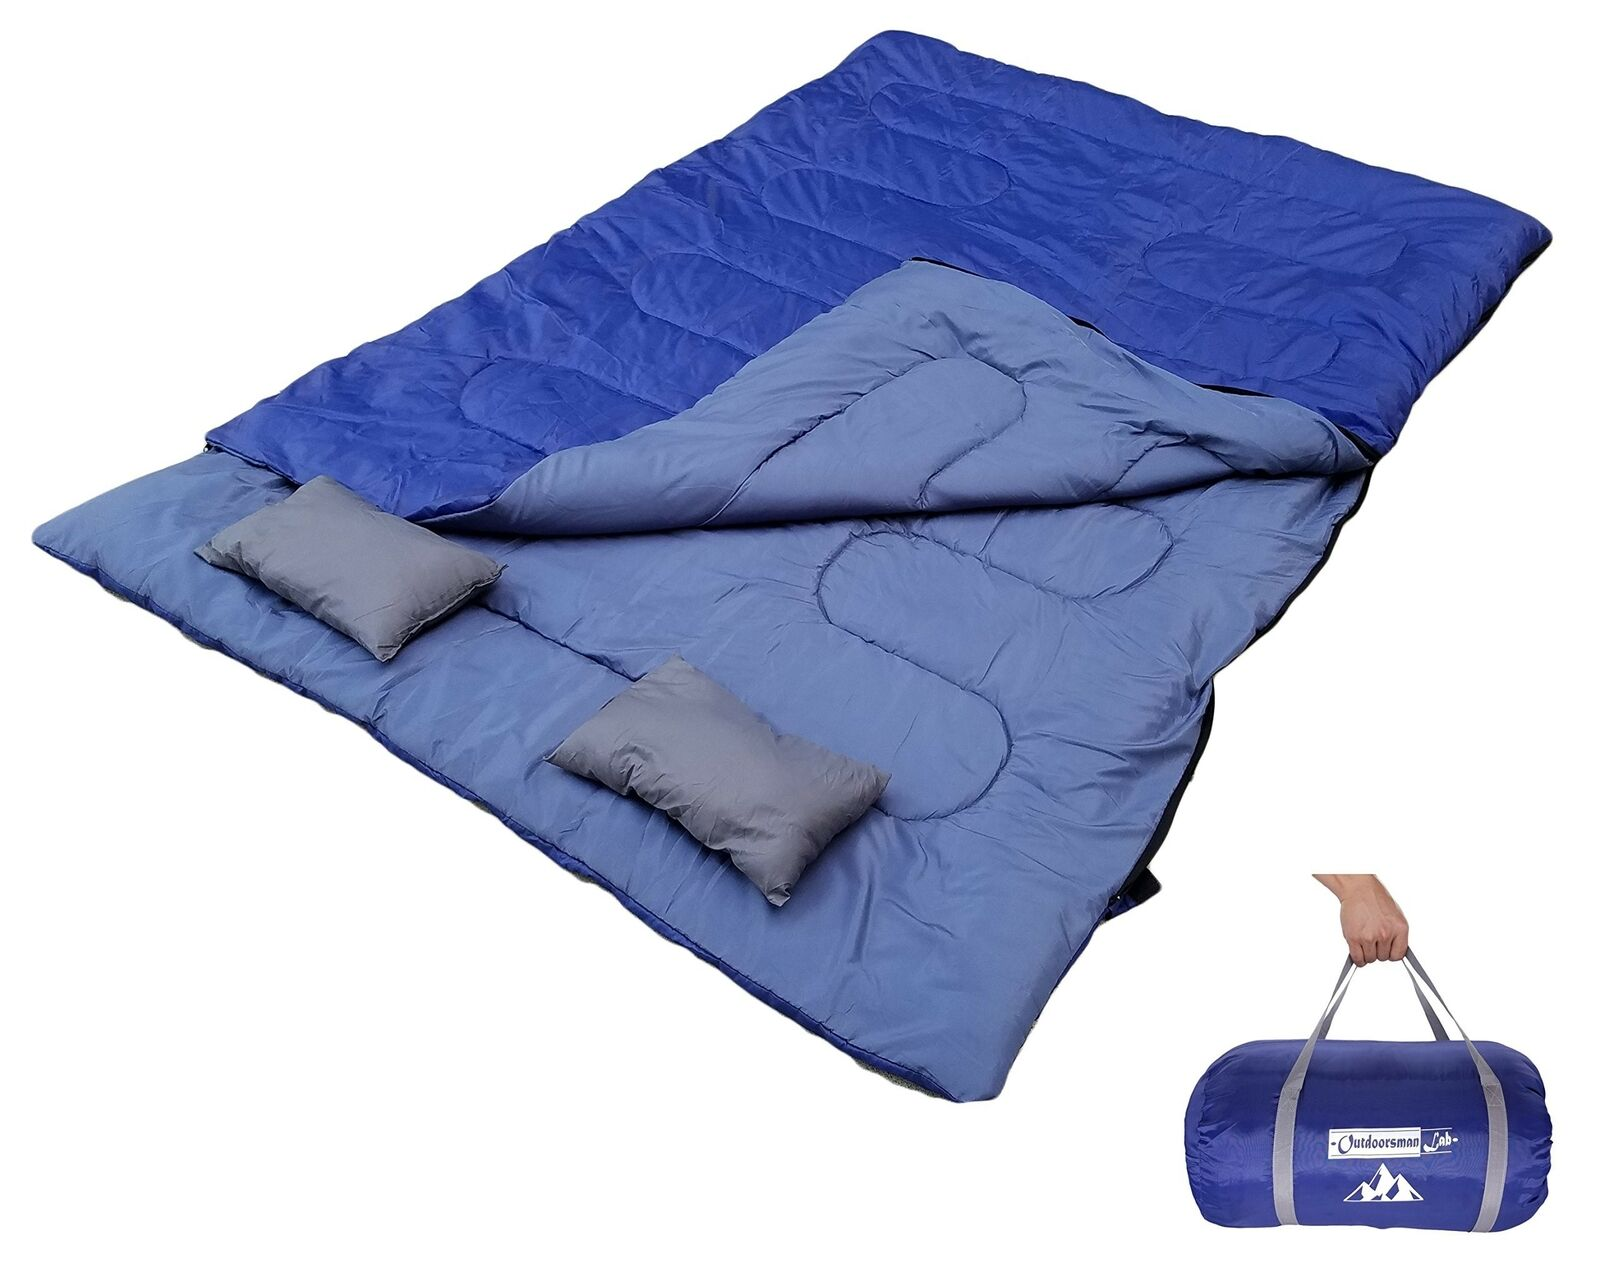 Outdoorsman  Lab Double Sleeping Bag (47 38F) with 2 Pillows and Carrying Bag ...  up to 60% off